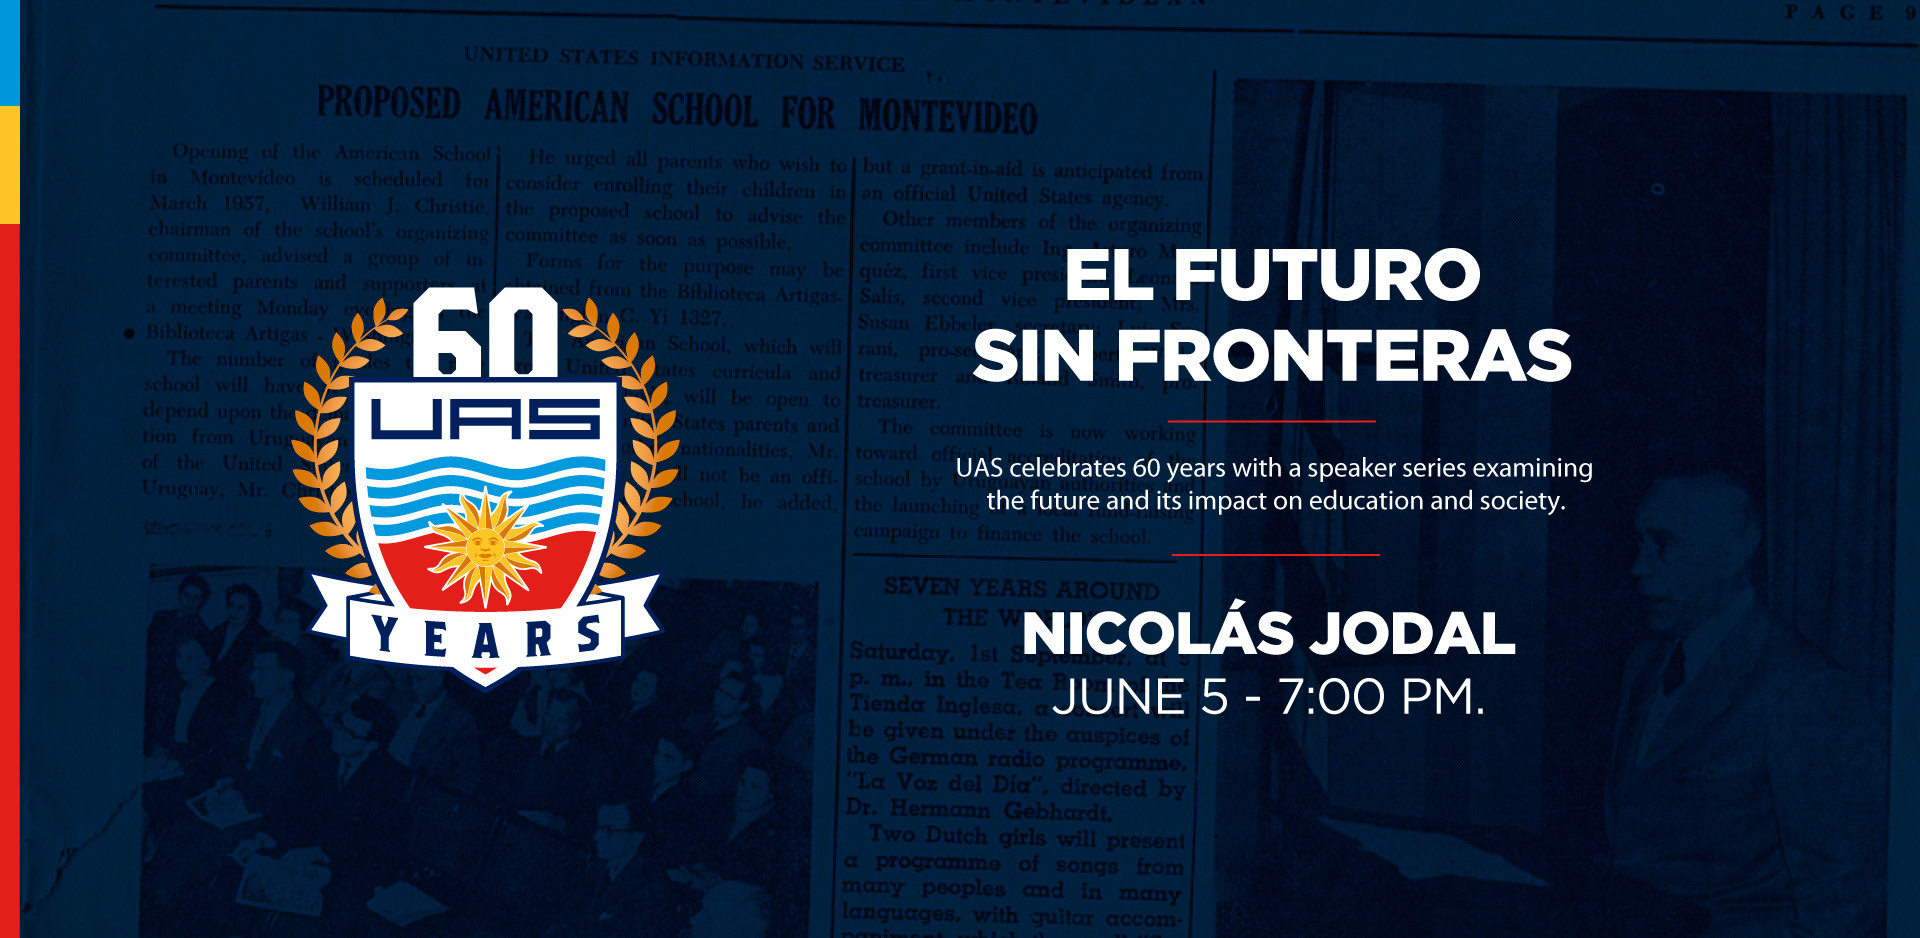 Nicolas_Jodal_june5_7pm